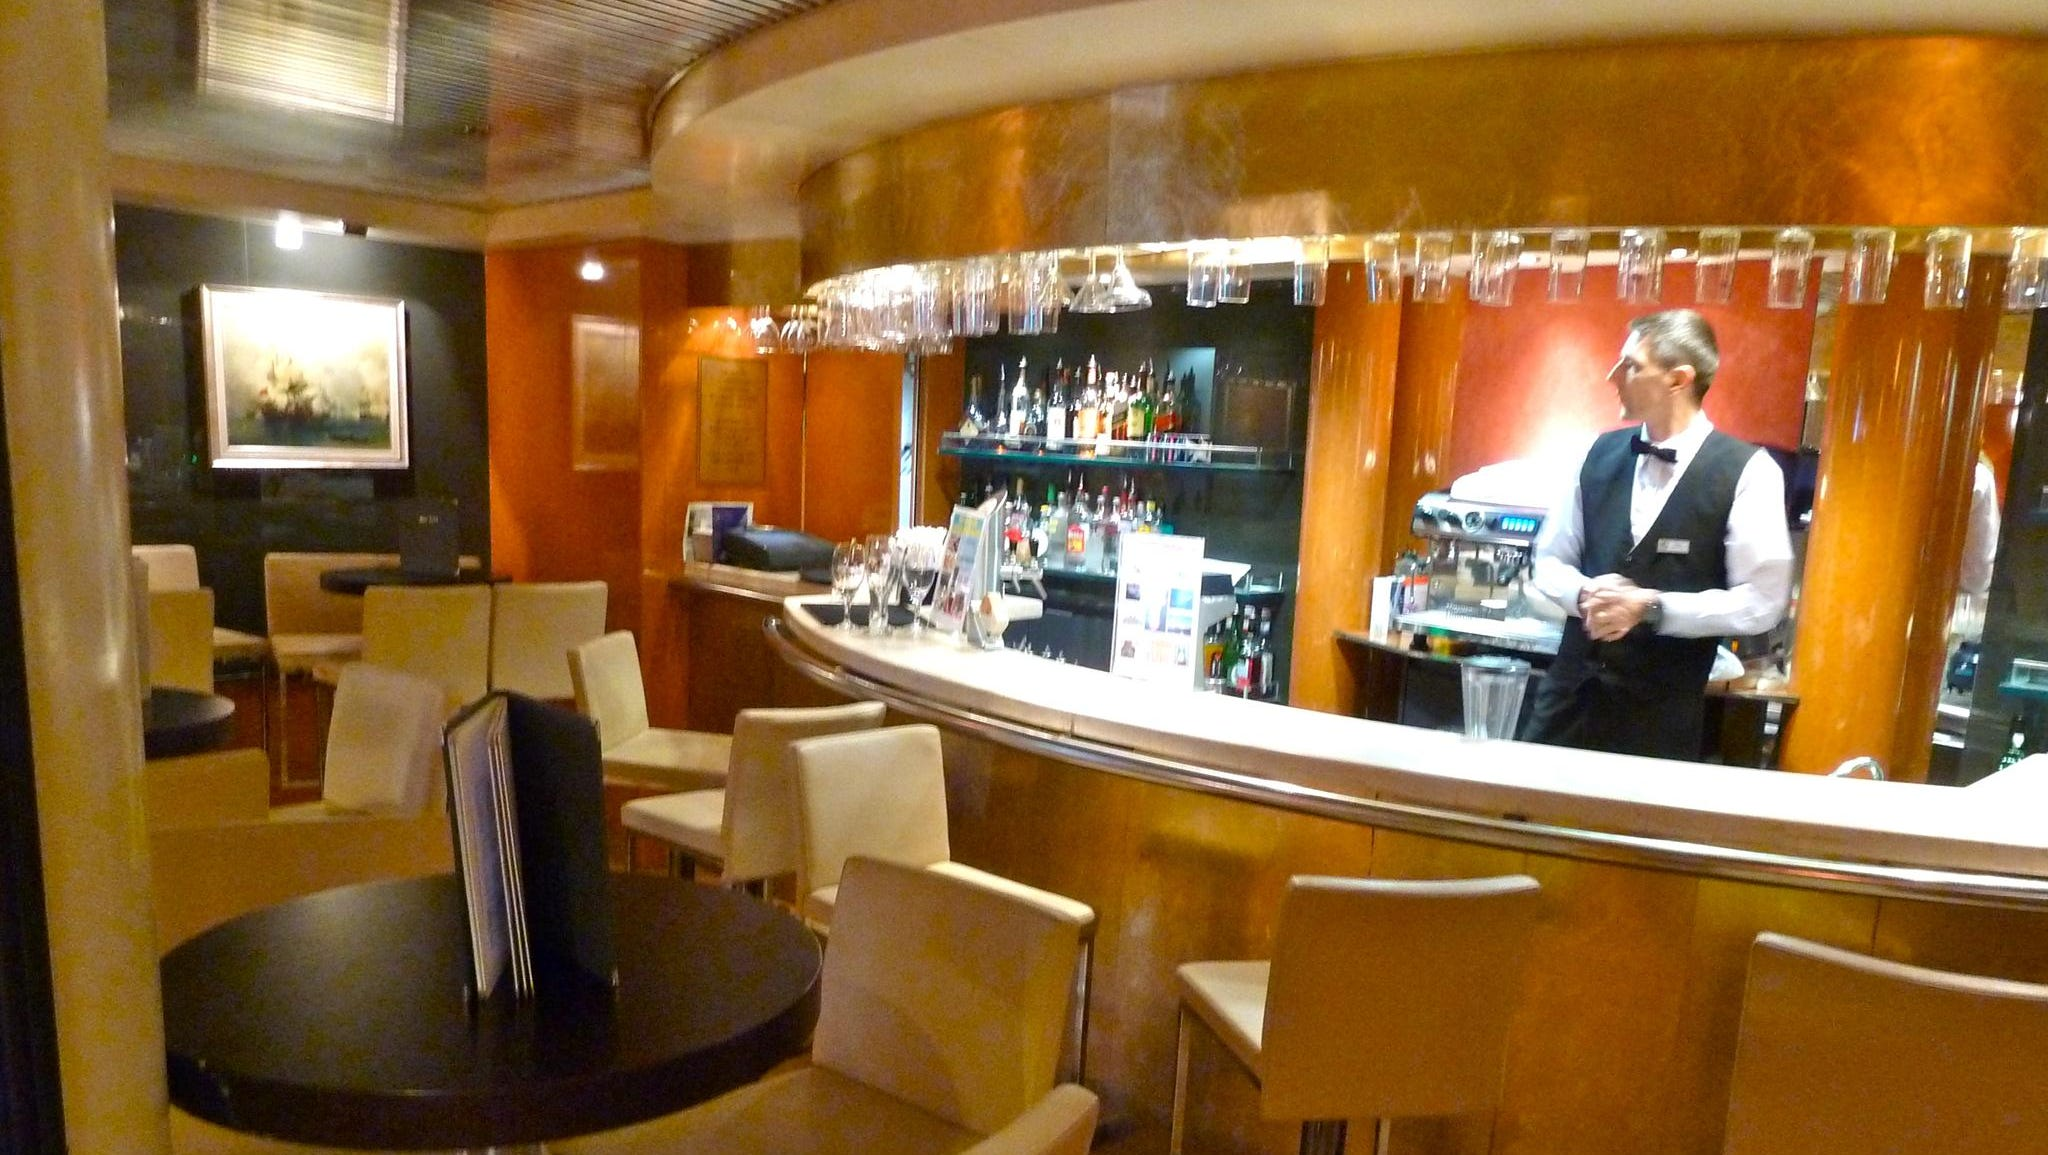 On the starboard side of the Columbus Lounge, there is an intimate bar area.